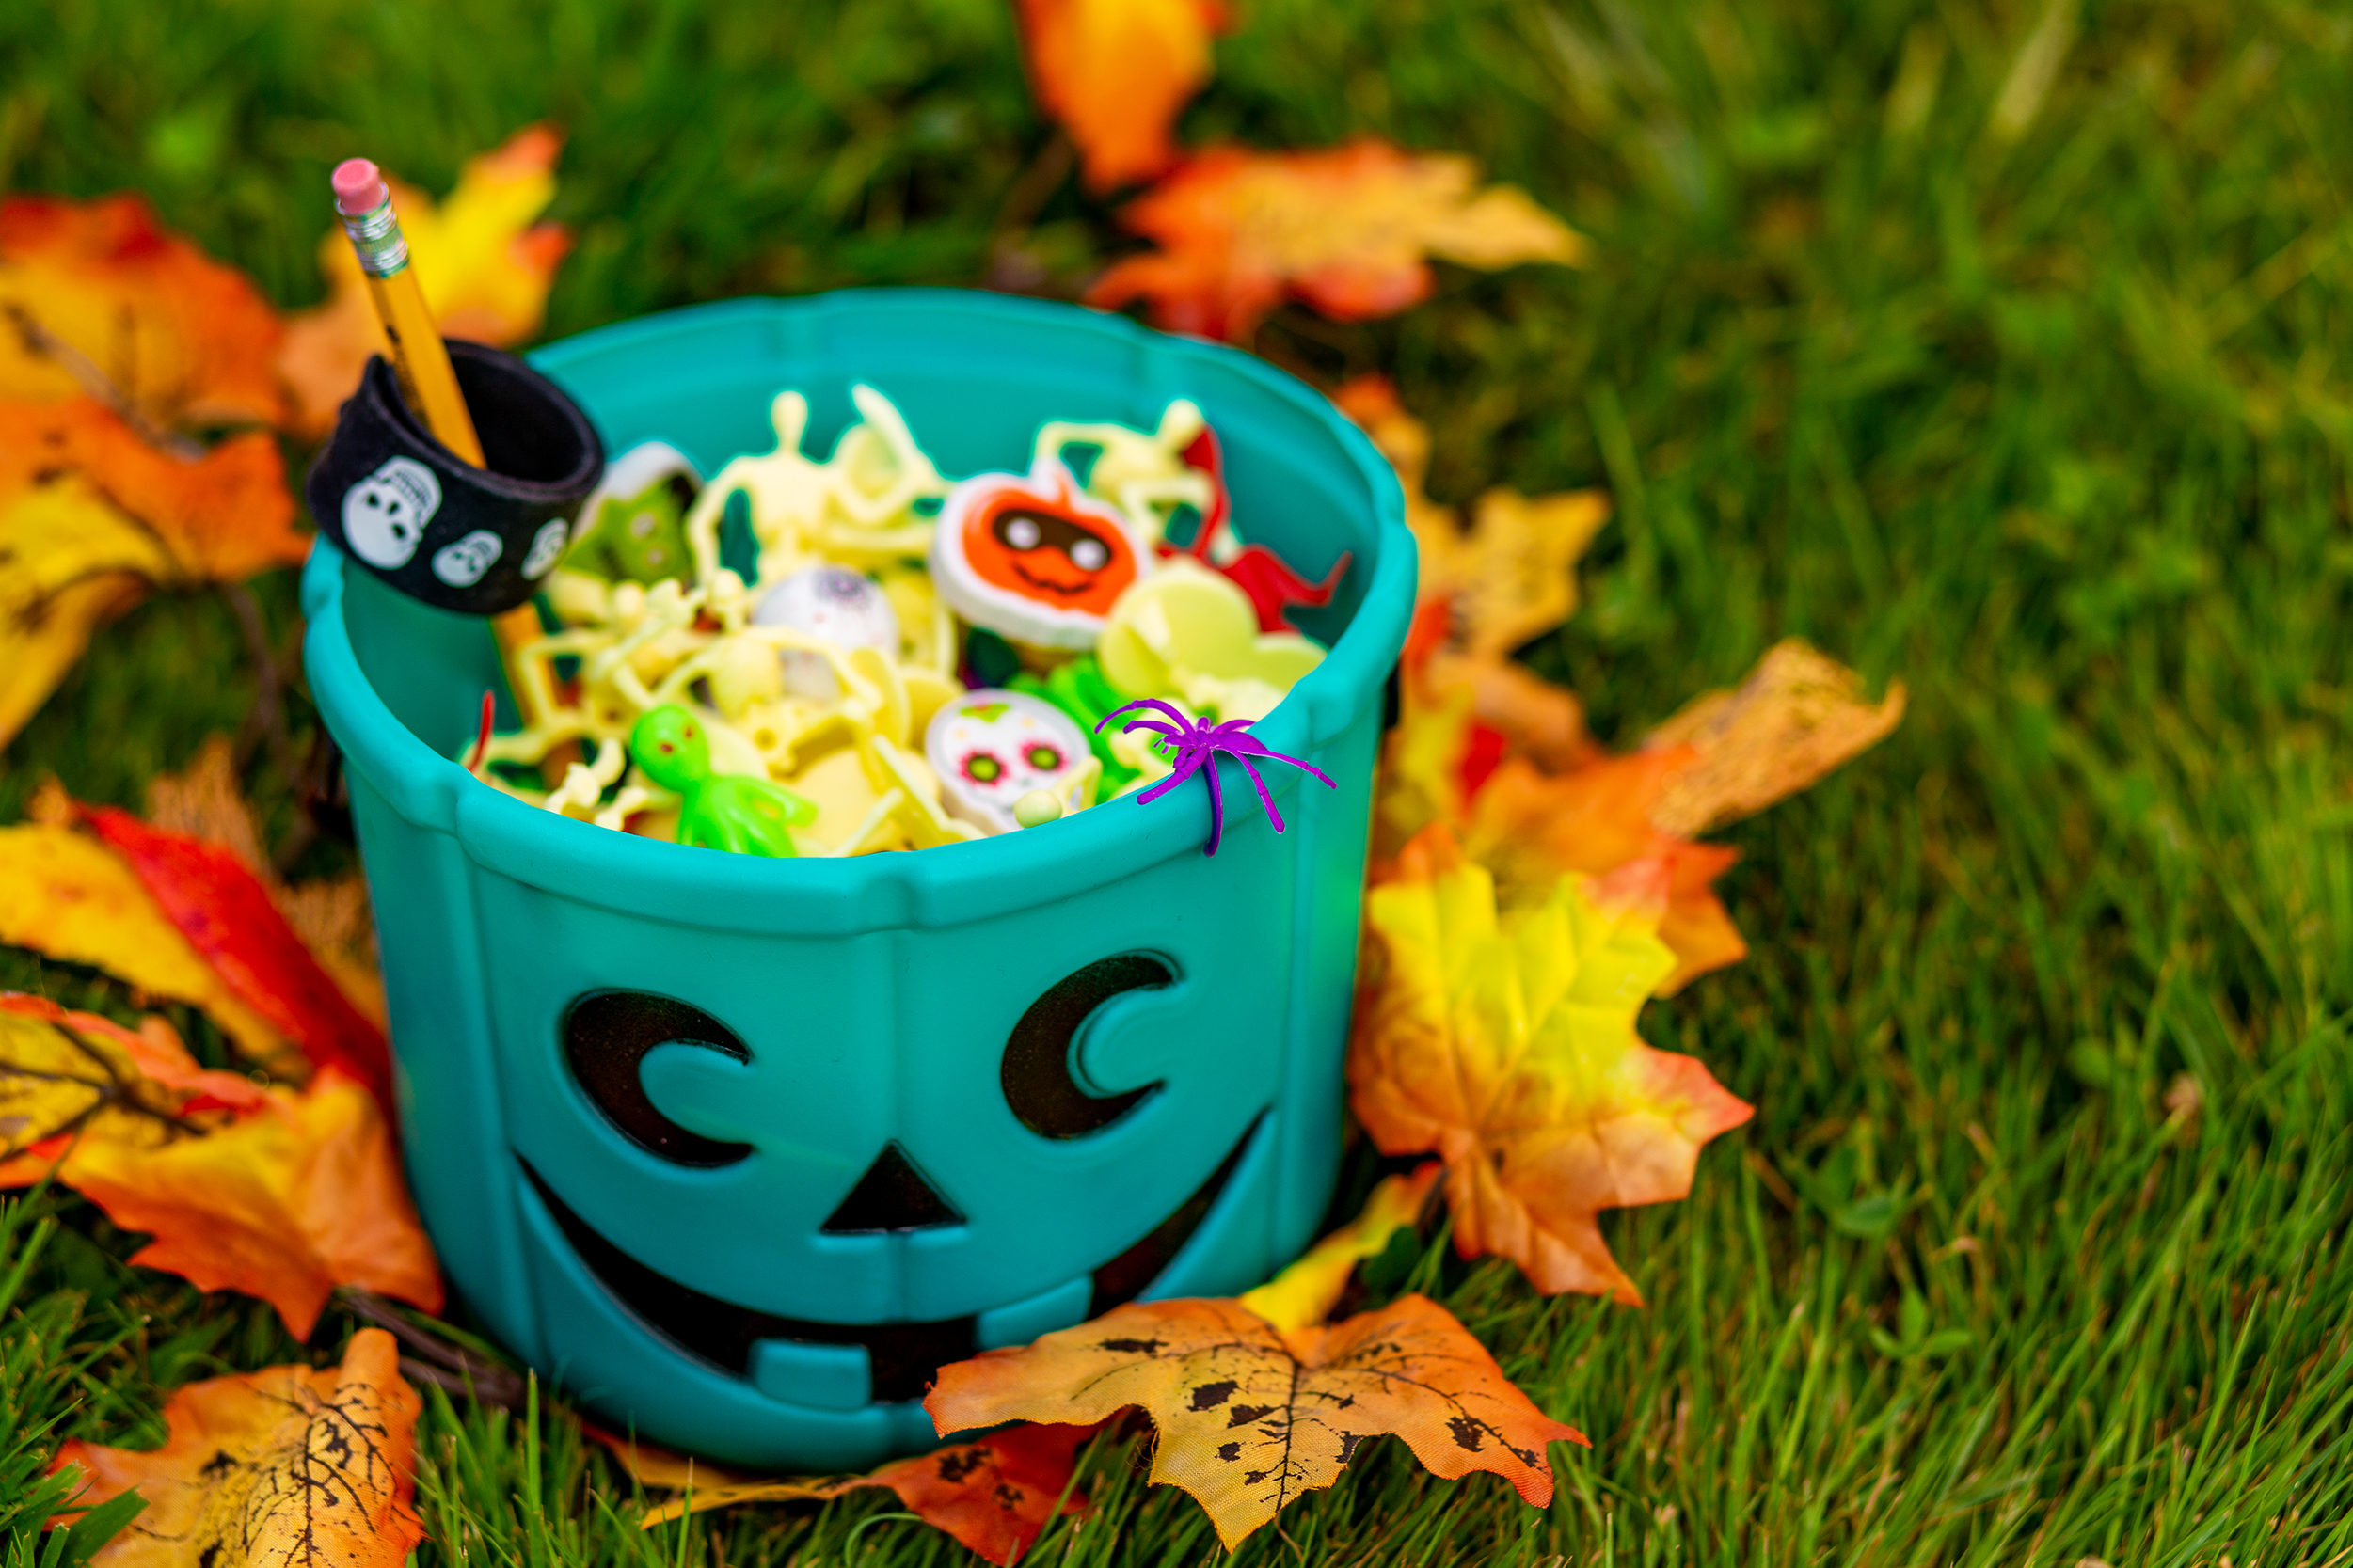 Non-Candy Giveaways for Trick-or-Treaters